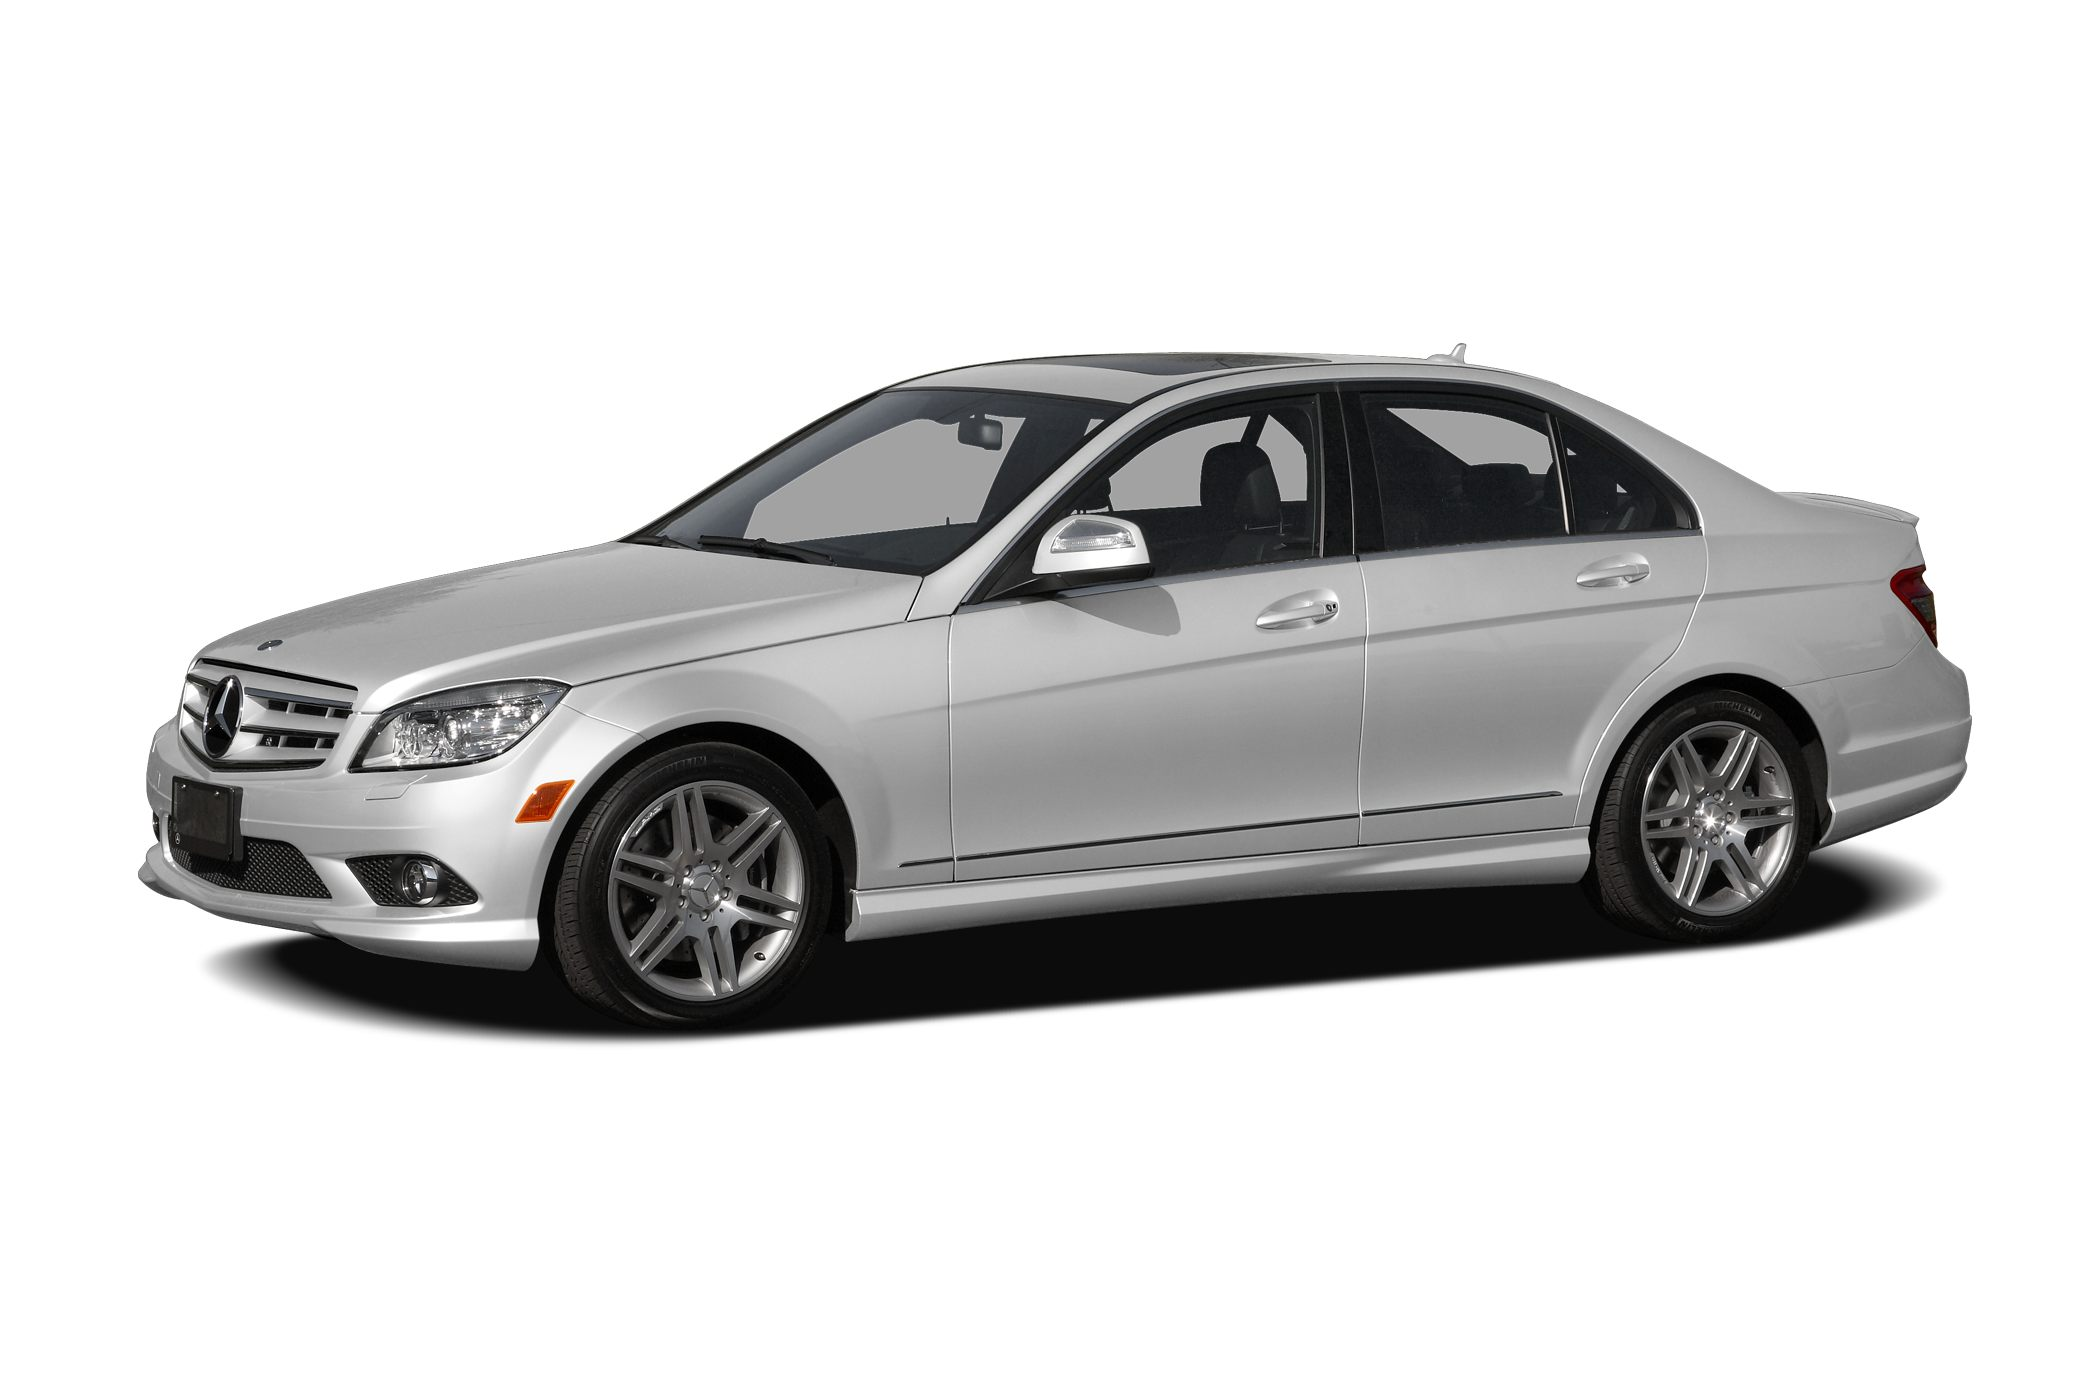 2008 mercedes benz c class c 350 sport for sale vin wddgf56x88f